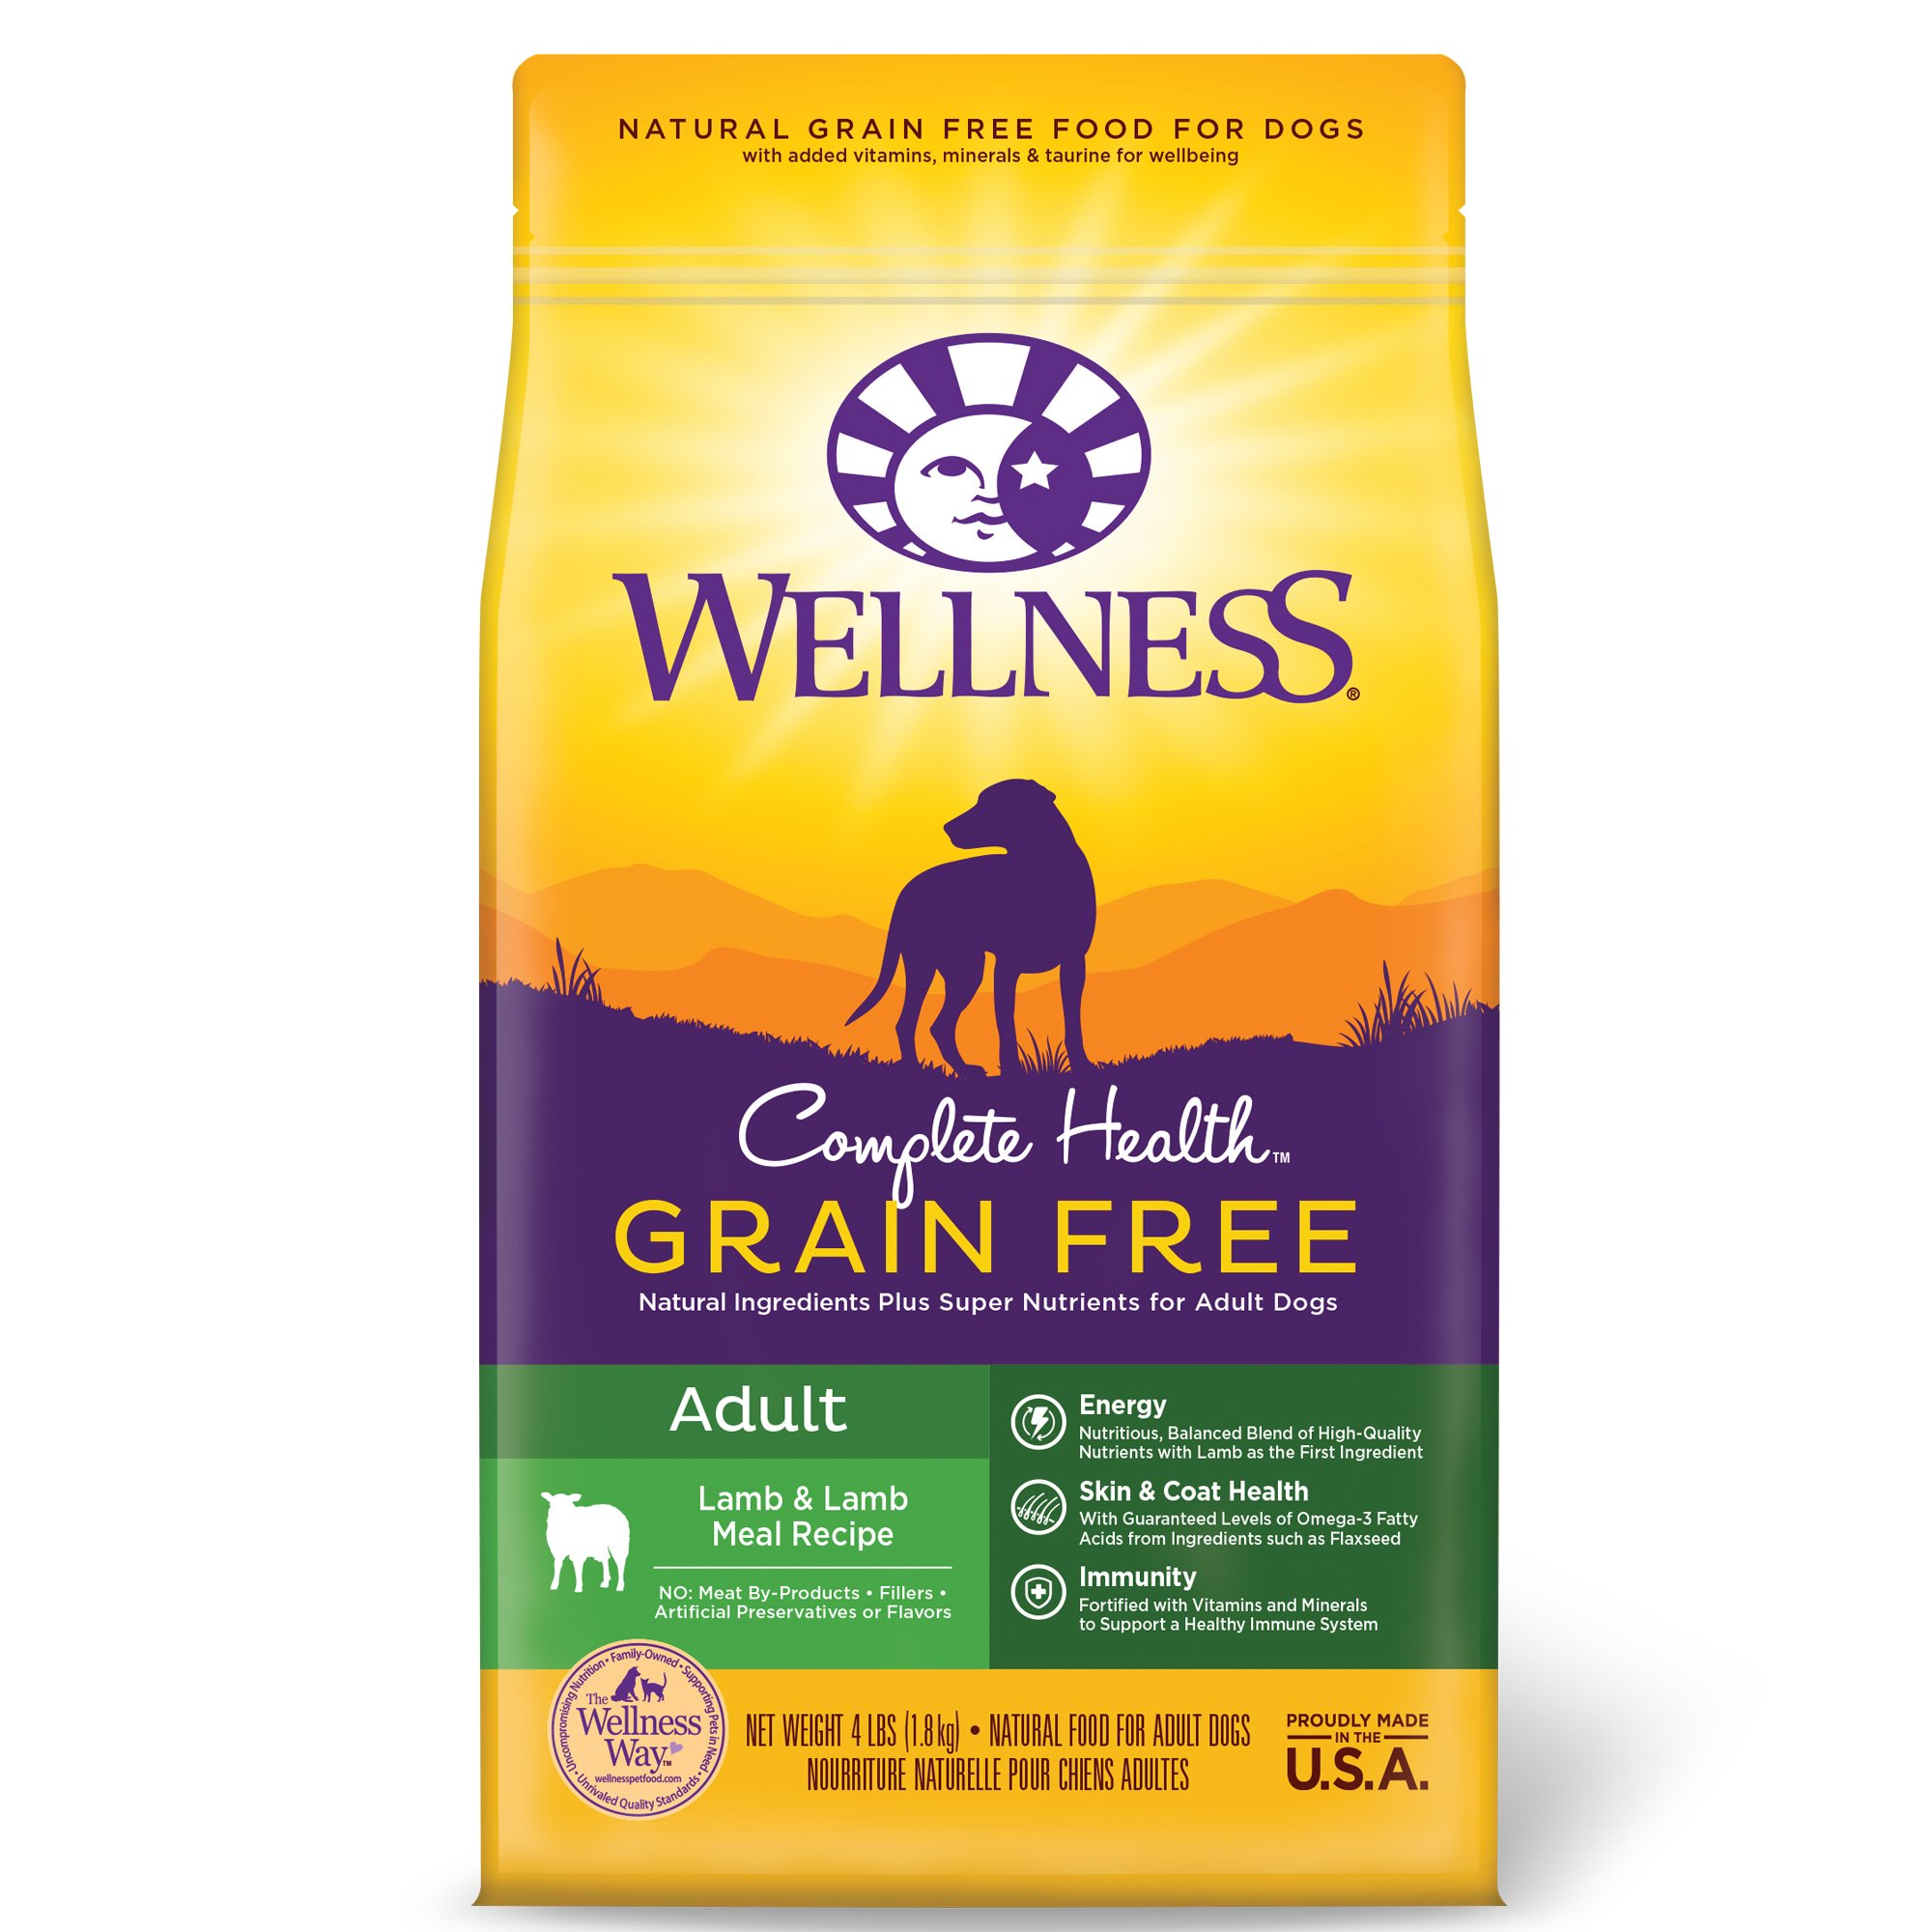 Wellness Complete Health Grain Free Adult Lamb & Lamb Meal Recipe Dry Dog Food, 4 lbs.